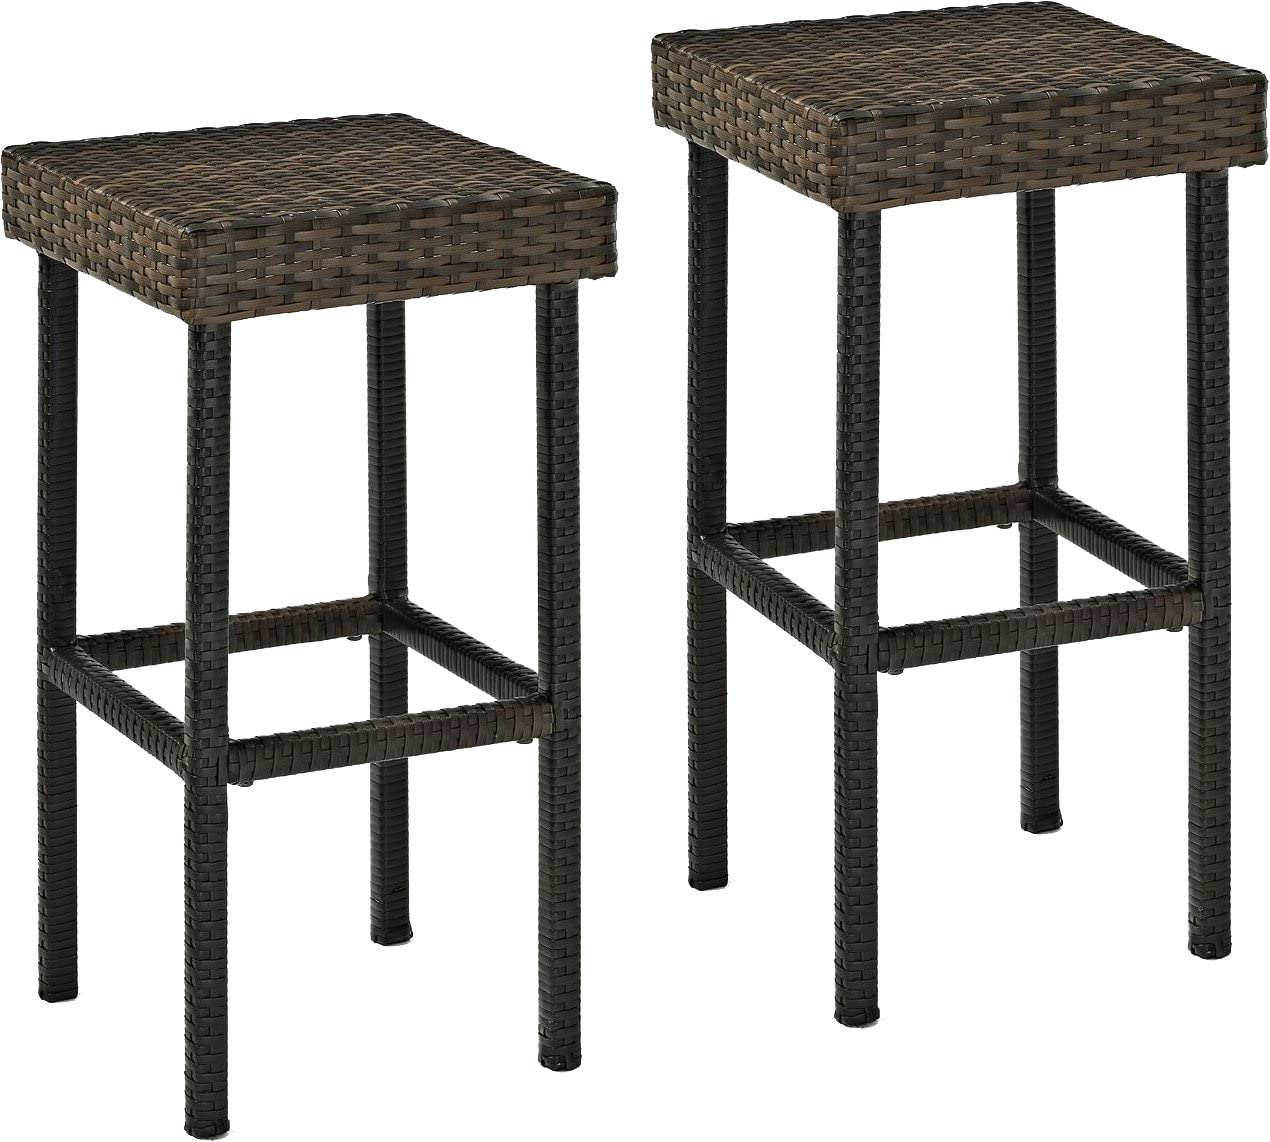 Crosley Furniture CO7108-BR Palm Harbor Outdoor Wicker 29-inch Bar Height Stools, Set of 2, Brown